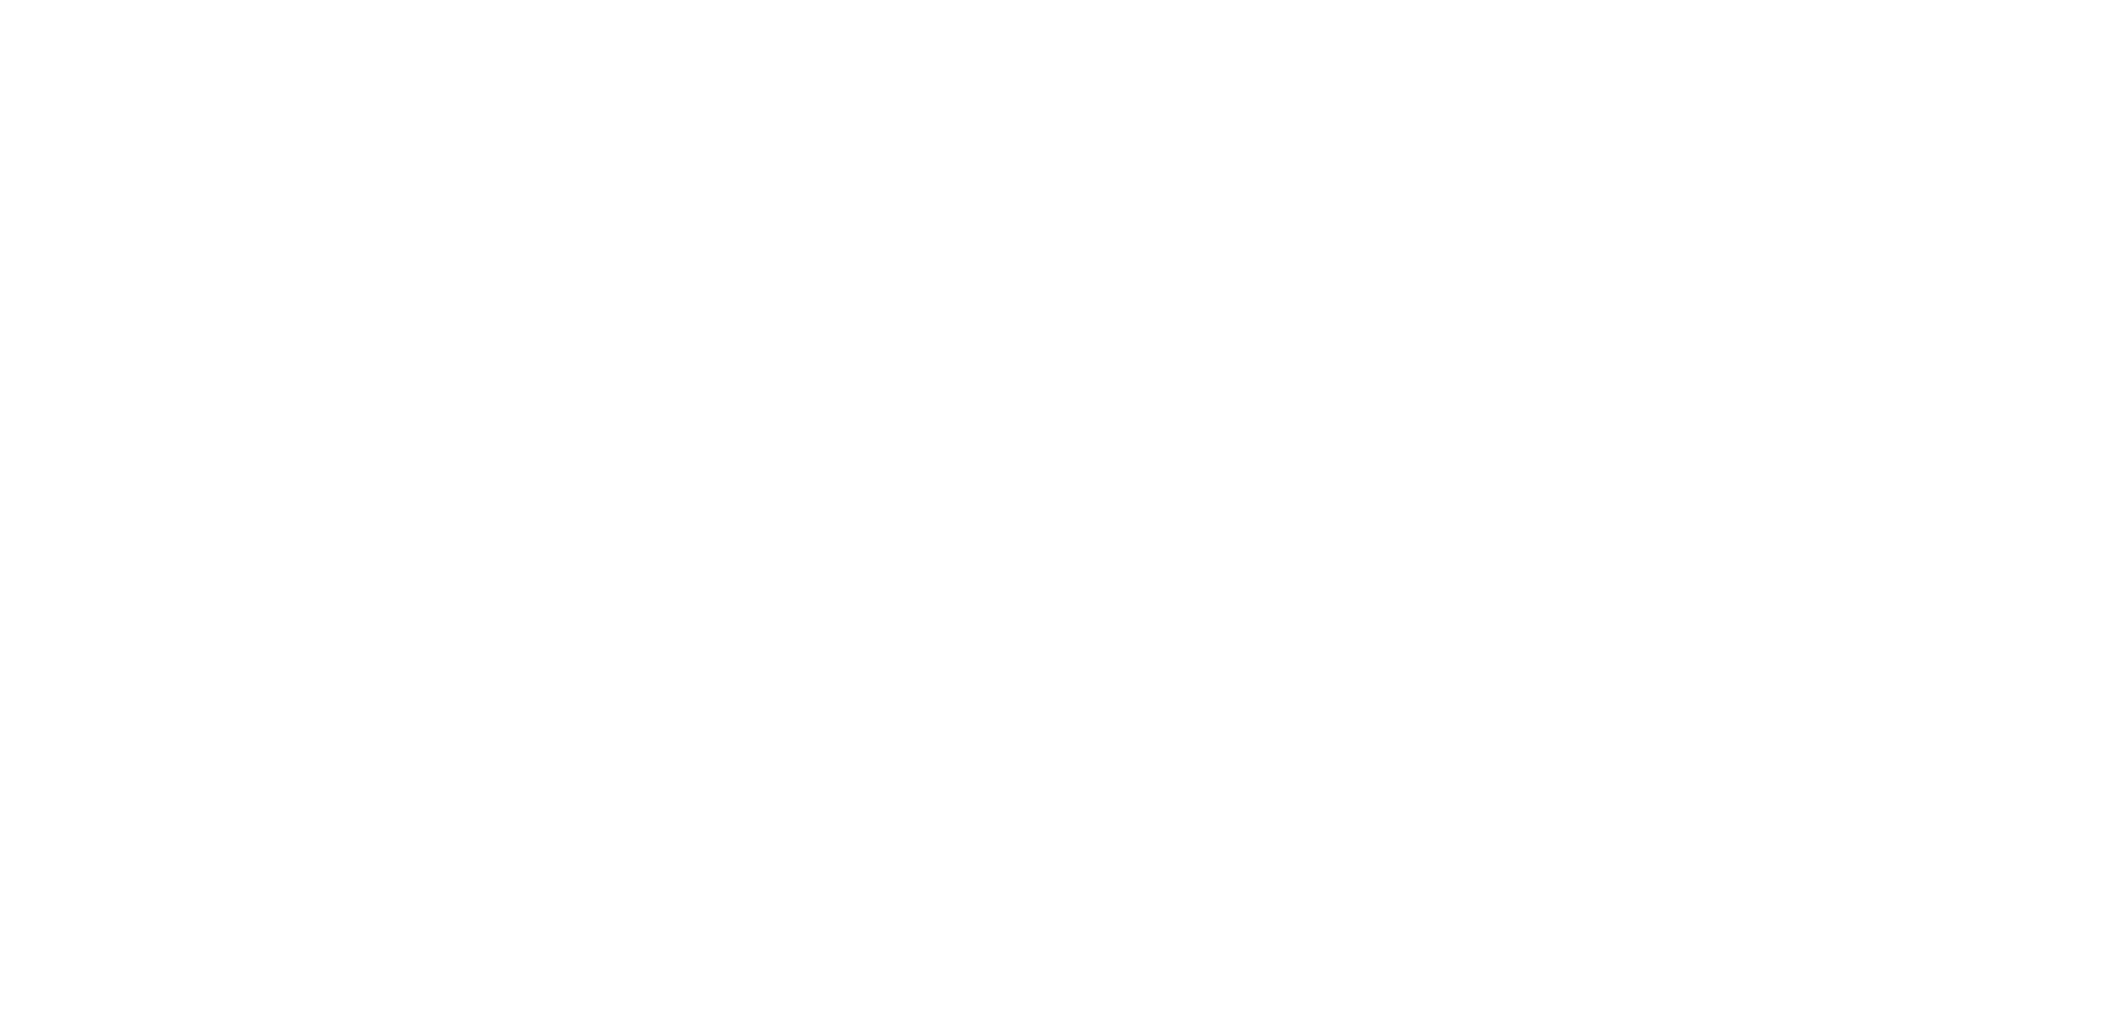 Surfrider Foundation – Santa Barbara Chapter